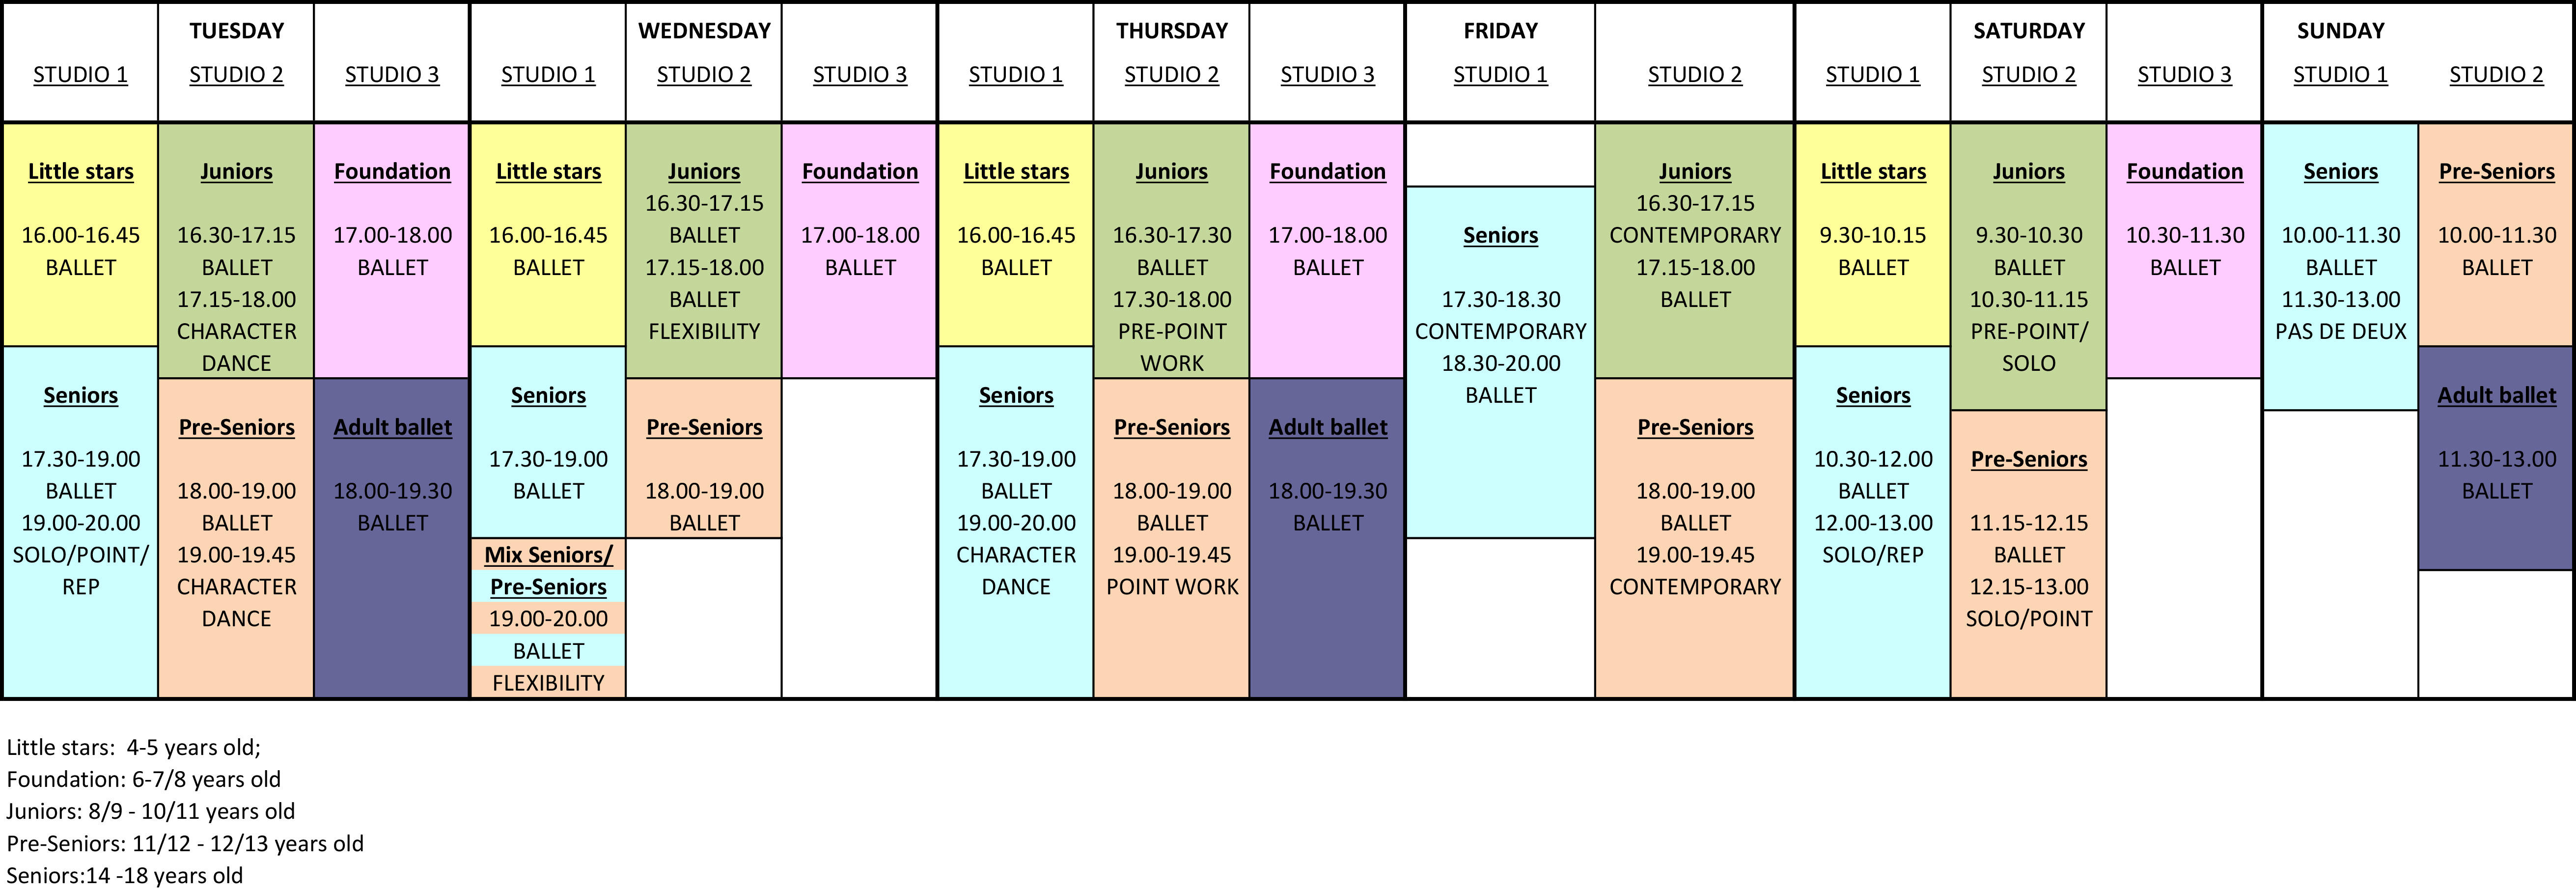 Masters of Ballet Academy Timetable September 2017